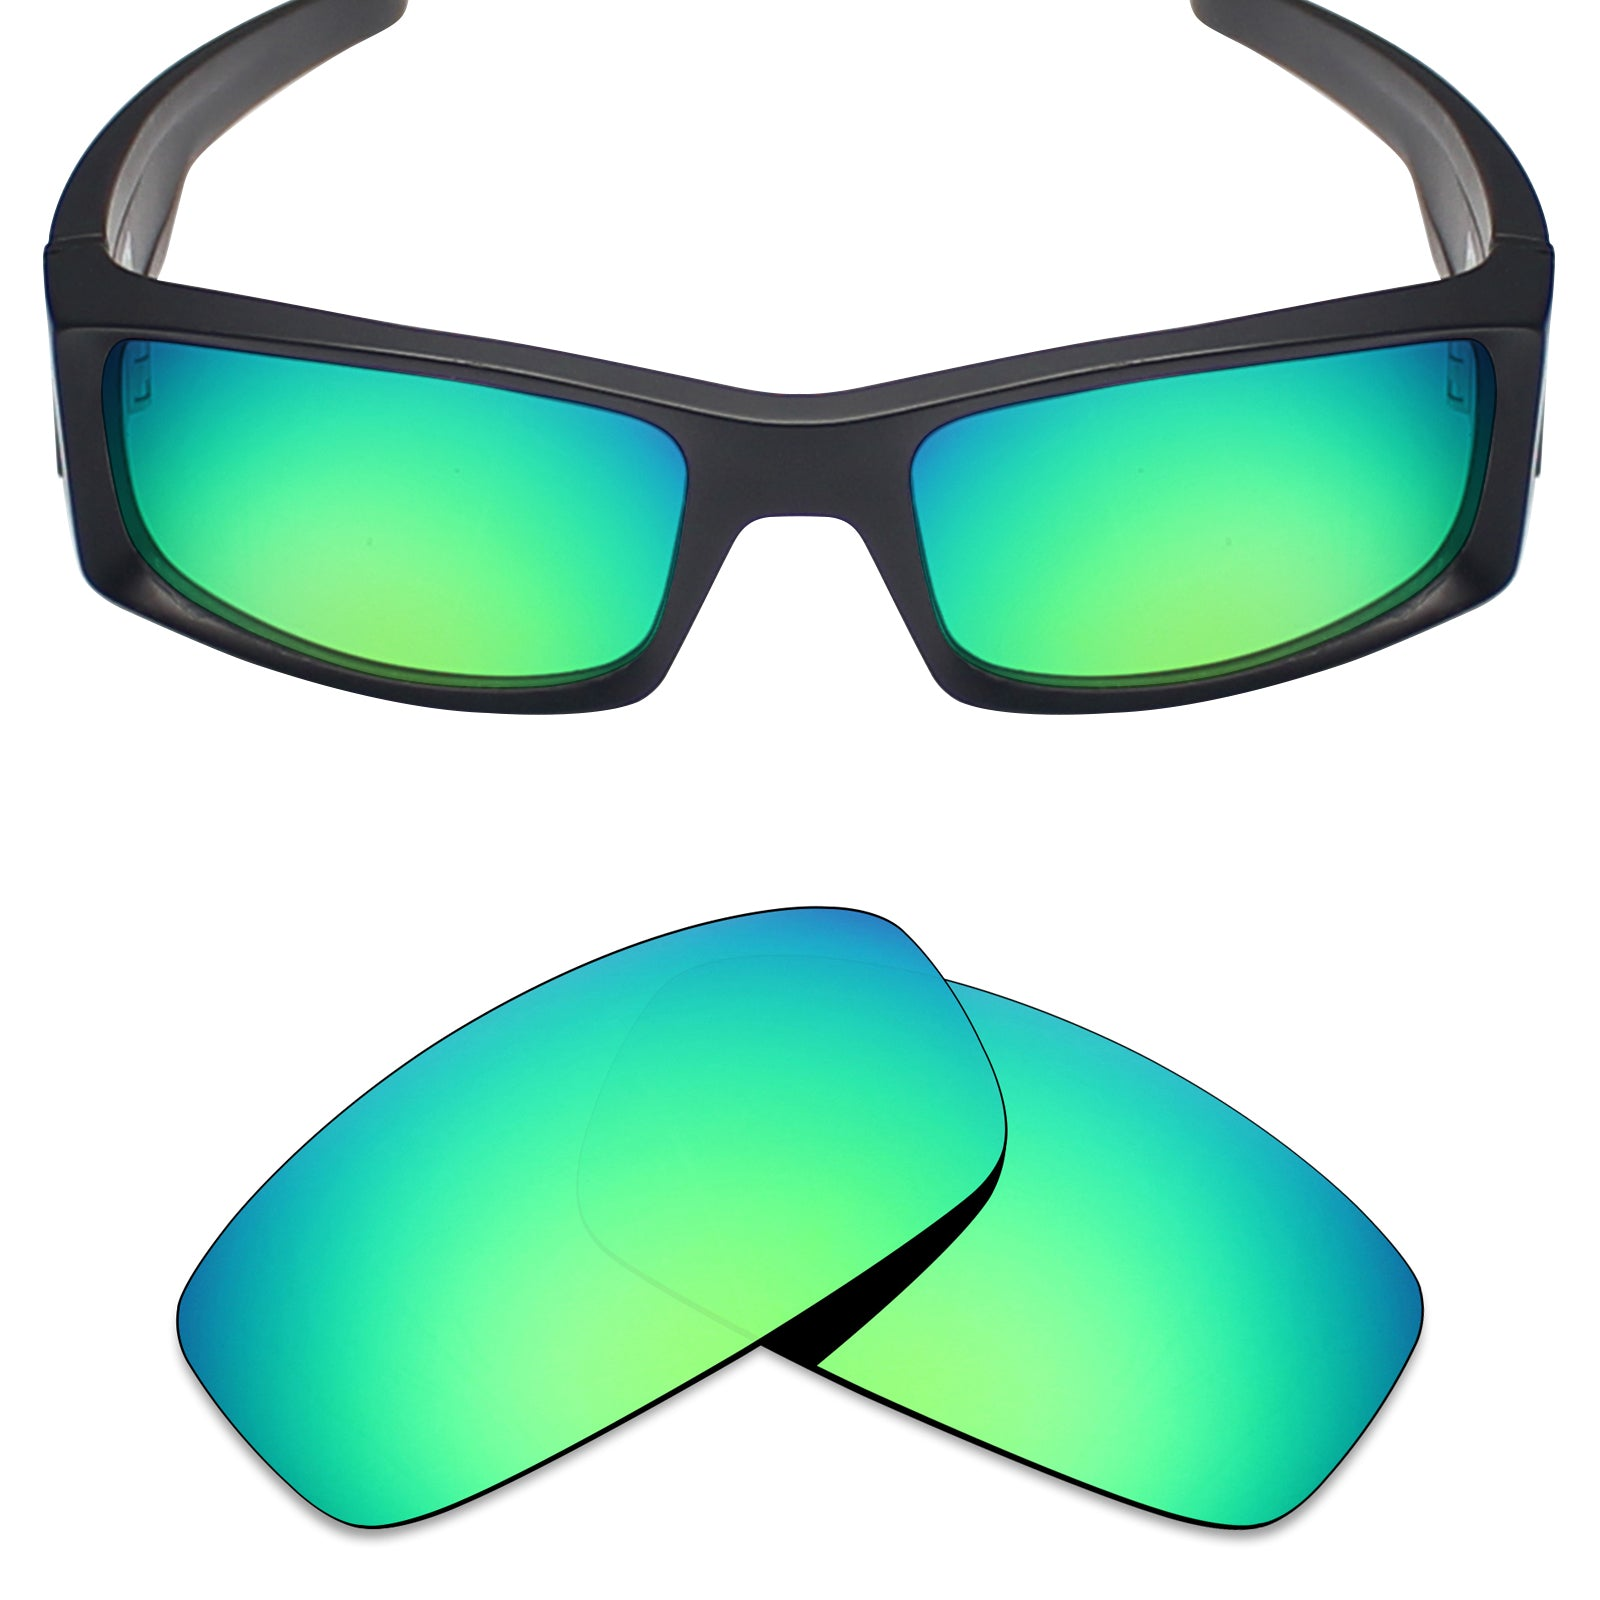 Fuse Lenses Polarized Replacement Lenses for Spy Optic Tice